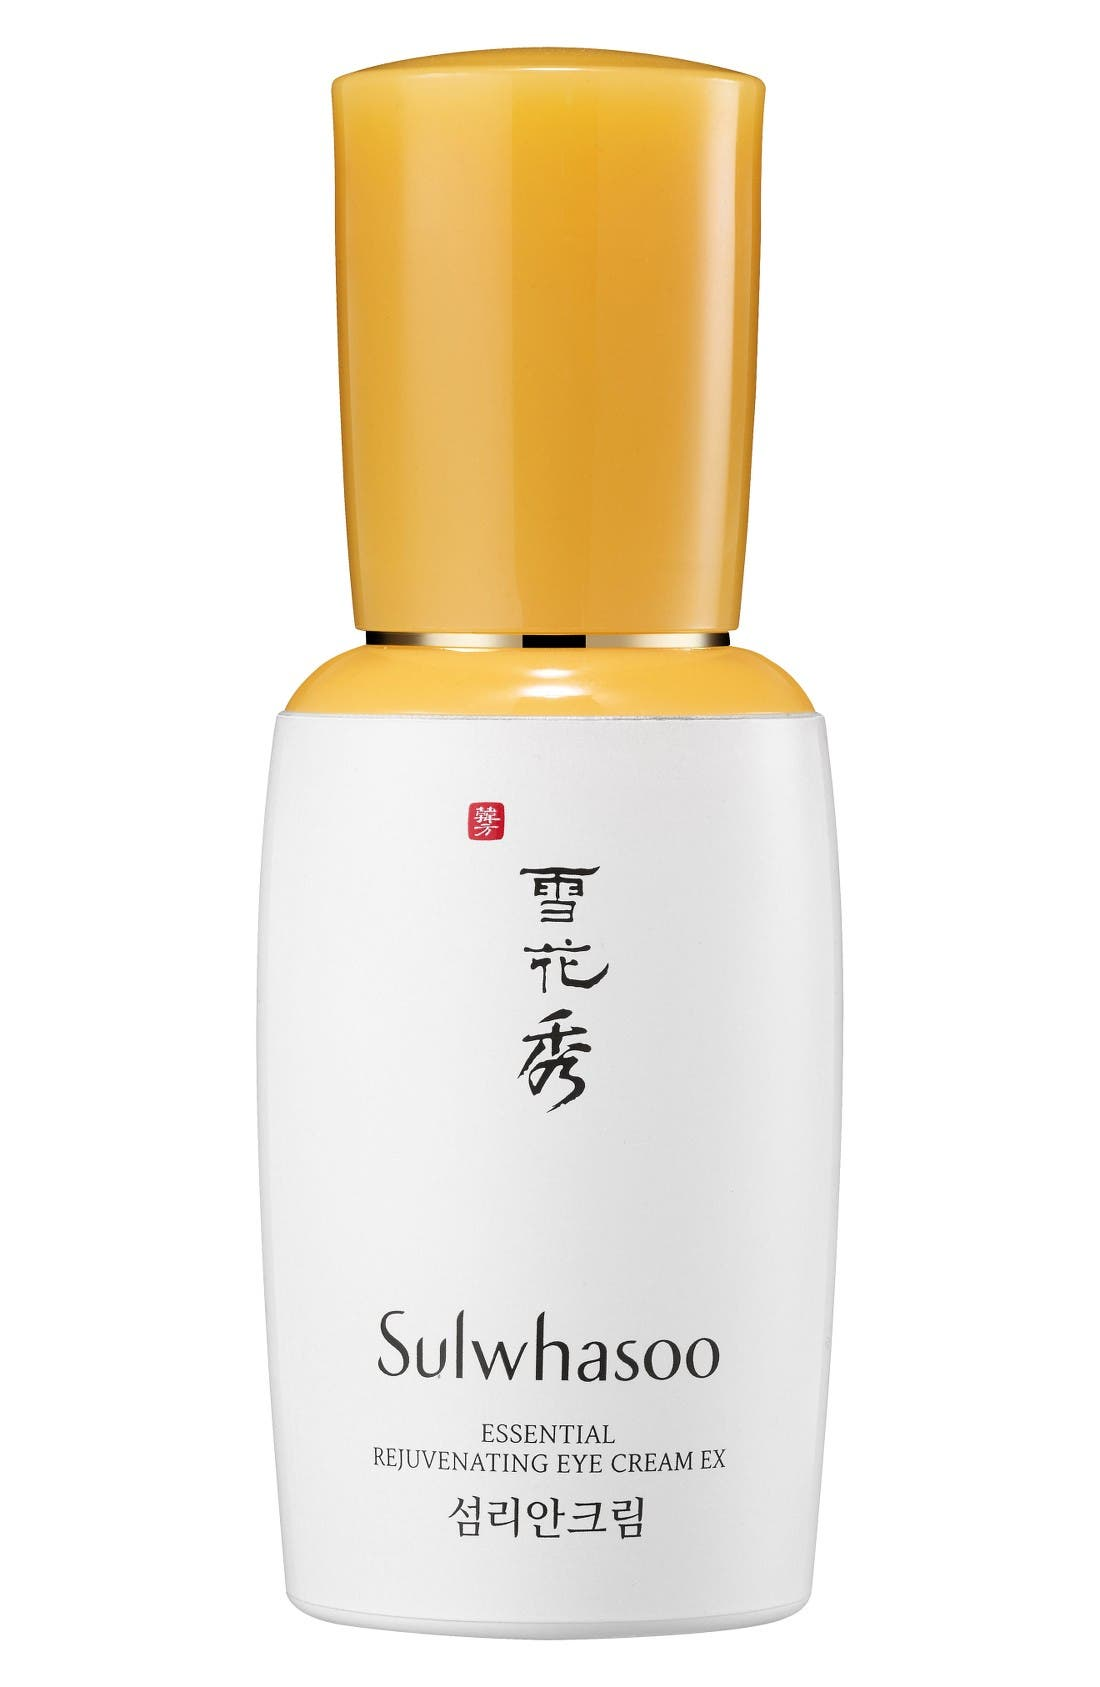 Main Image - Sulwhasoo Essential Rejuvenating Eye Cream EX